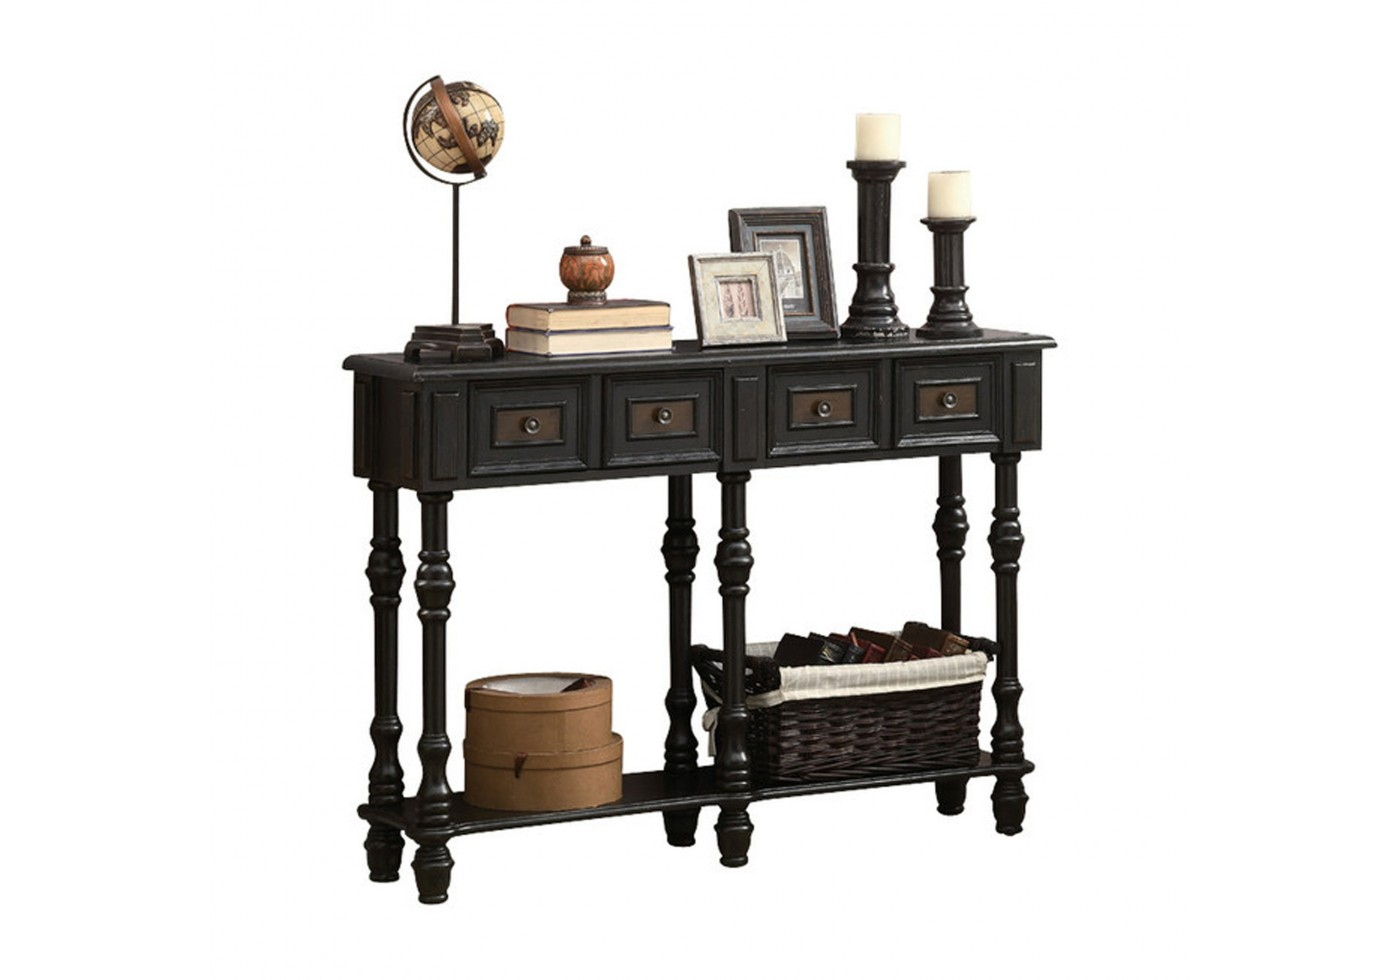 accent table antique black traditional style display coffee plans acrylic drink small white desk charging station grey dining set espresso end round decorative tables under home